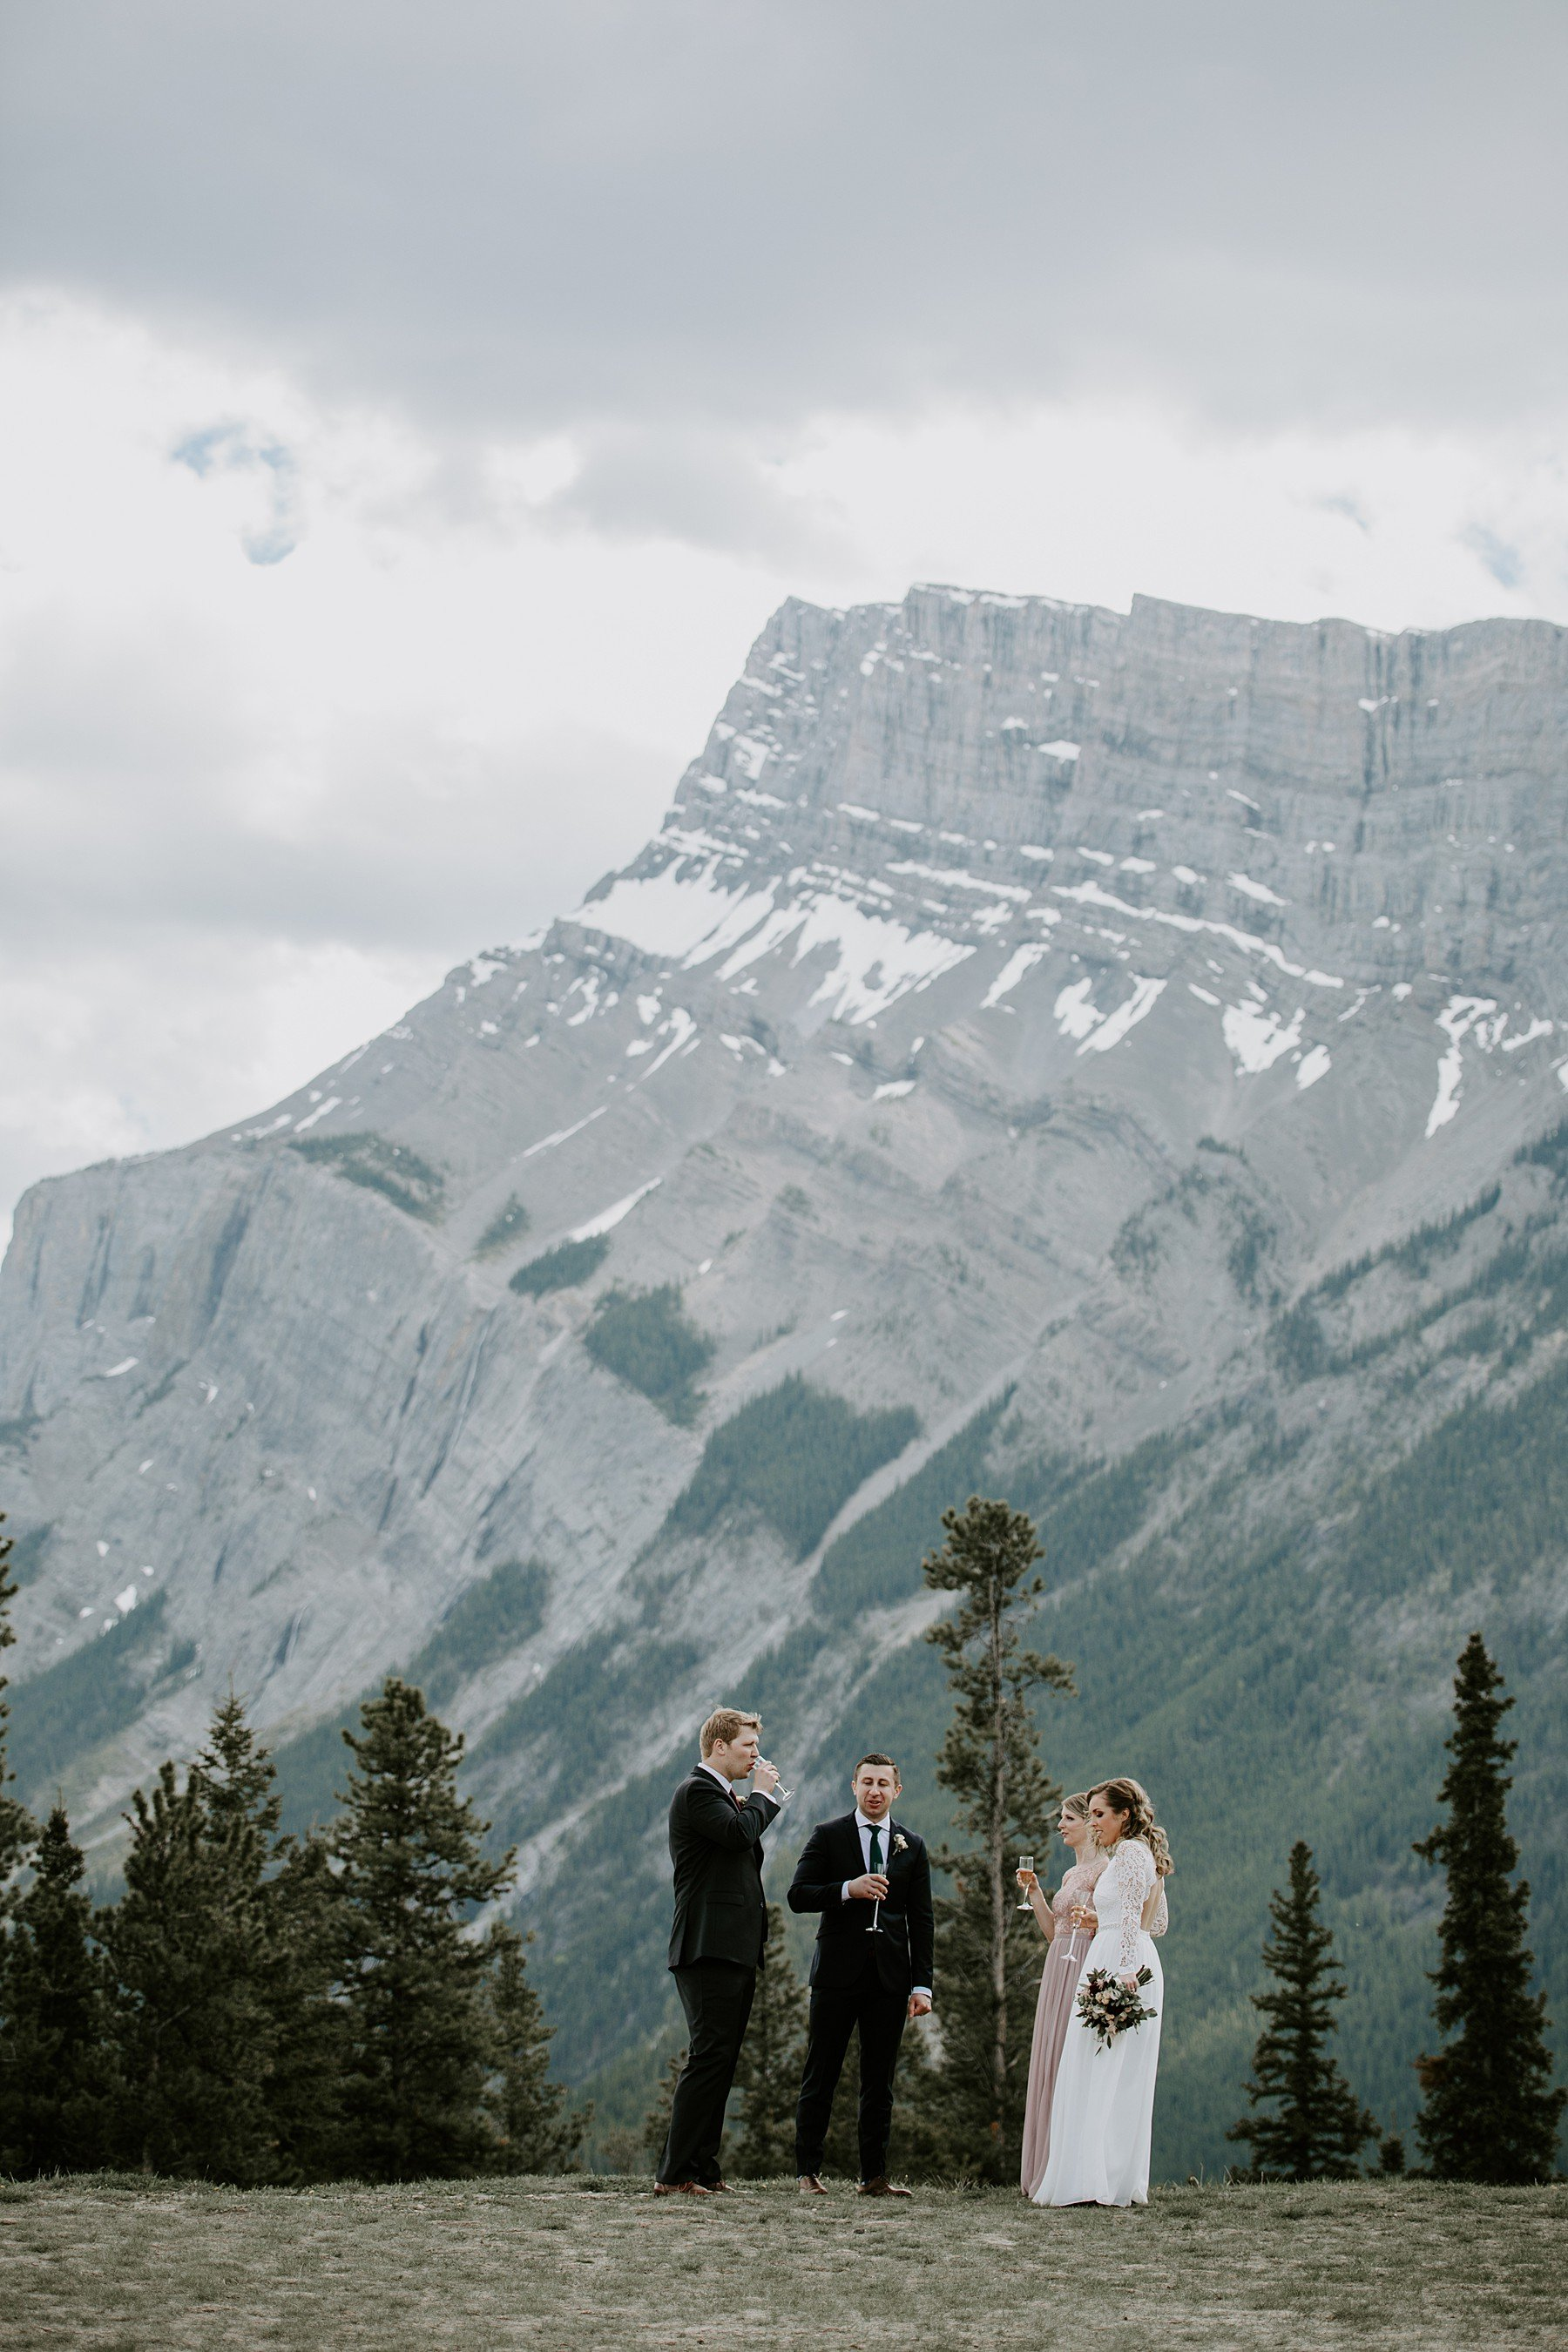 Teller of Tales Photography - Elopement - Tunnel Mountain Banff-61.jpg